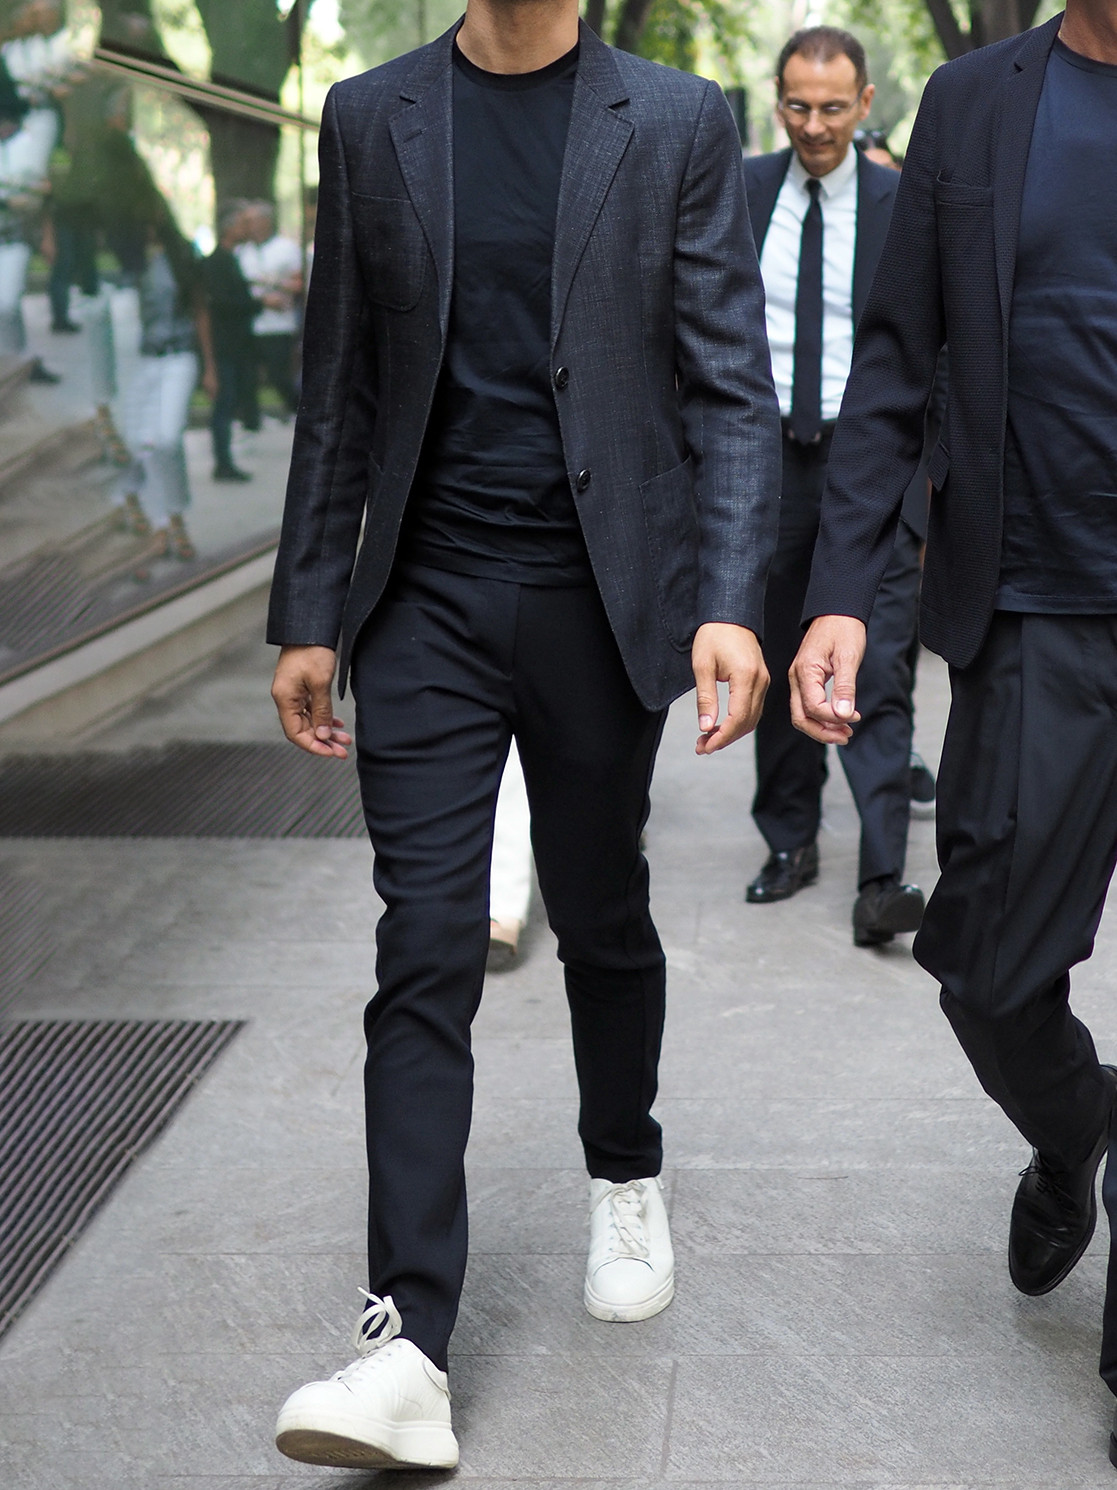 Men's outfit idea for 2021 with navy textured blazer, navy crew neck t-shirt, navy formal trousers, white trainers. Suitable for spring, summer and autumn.